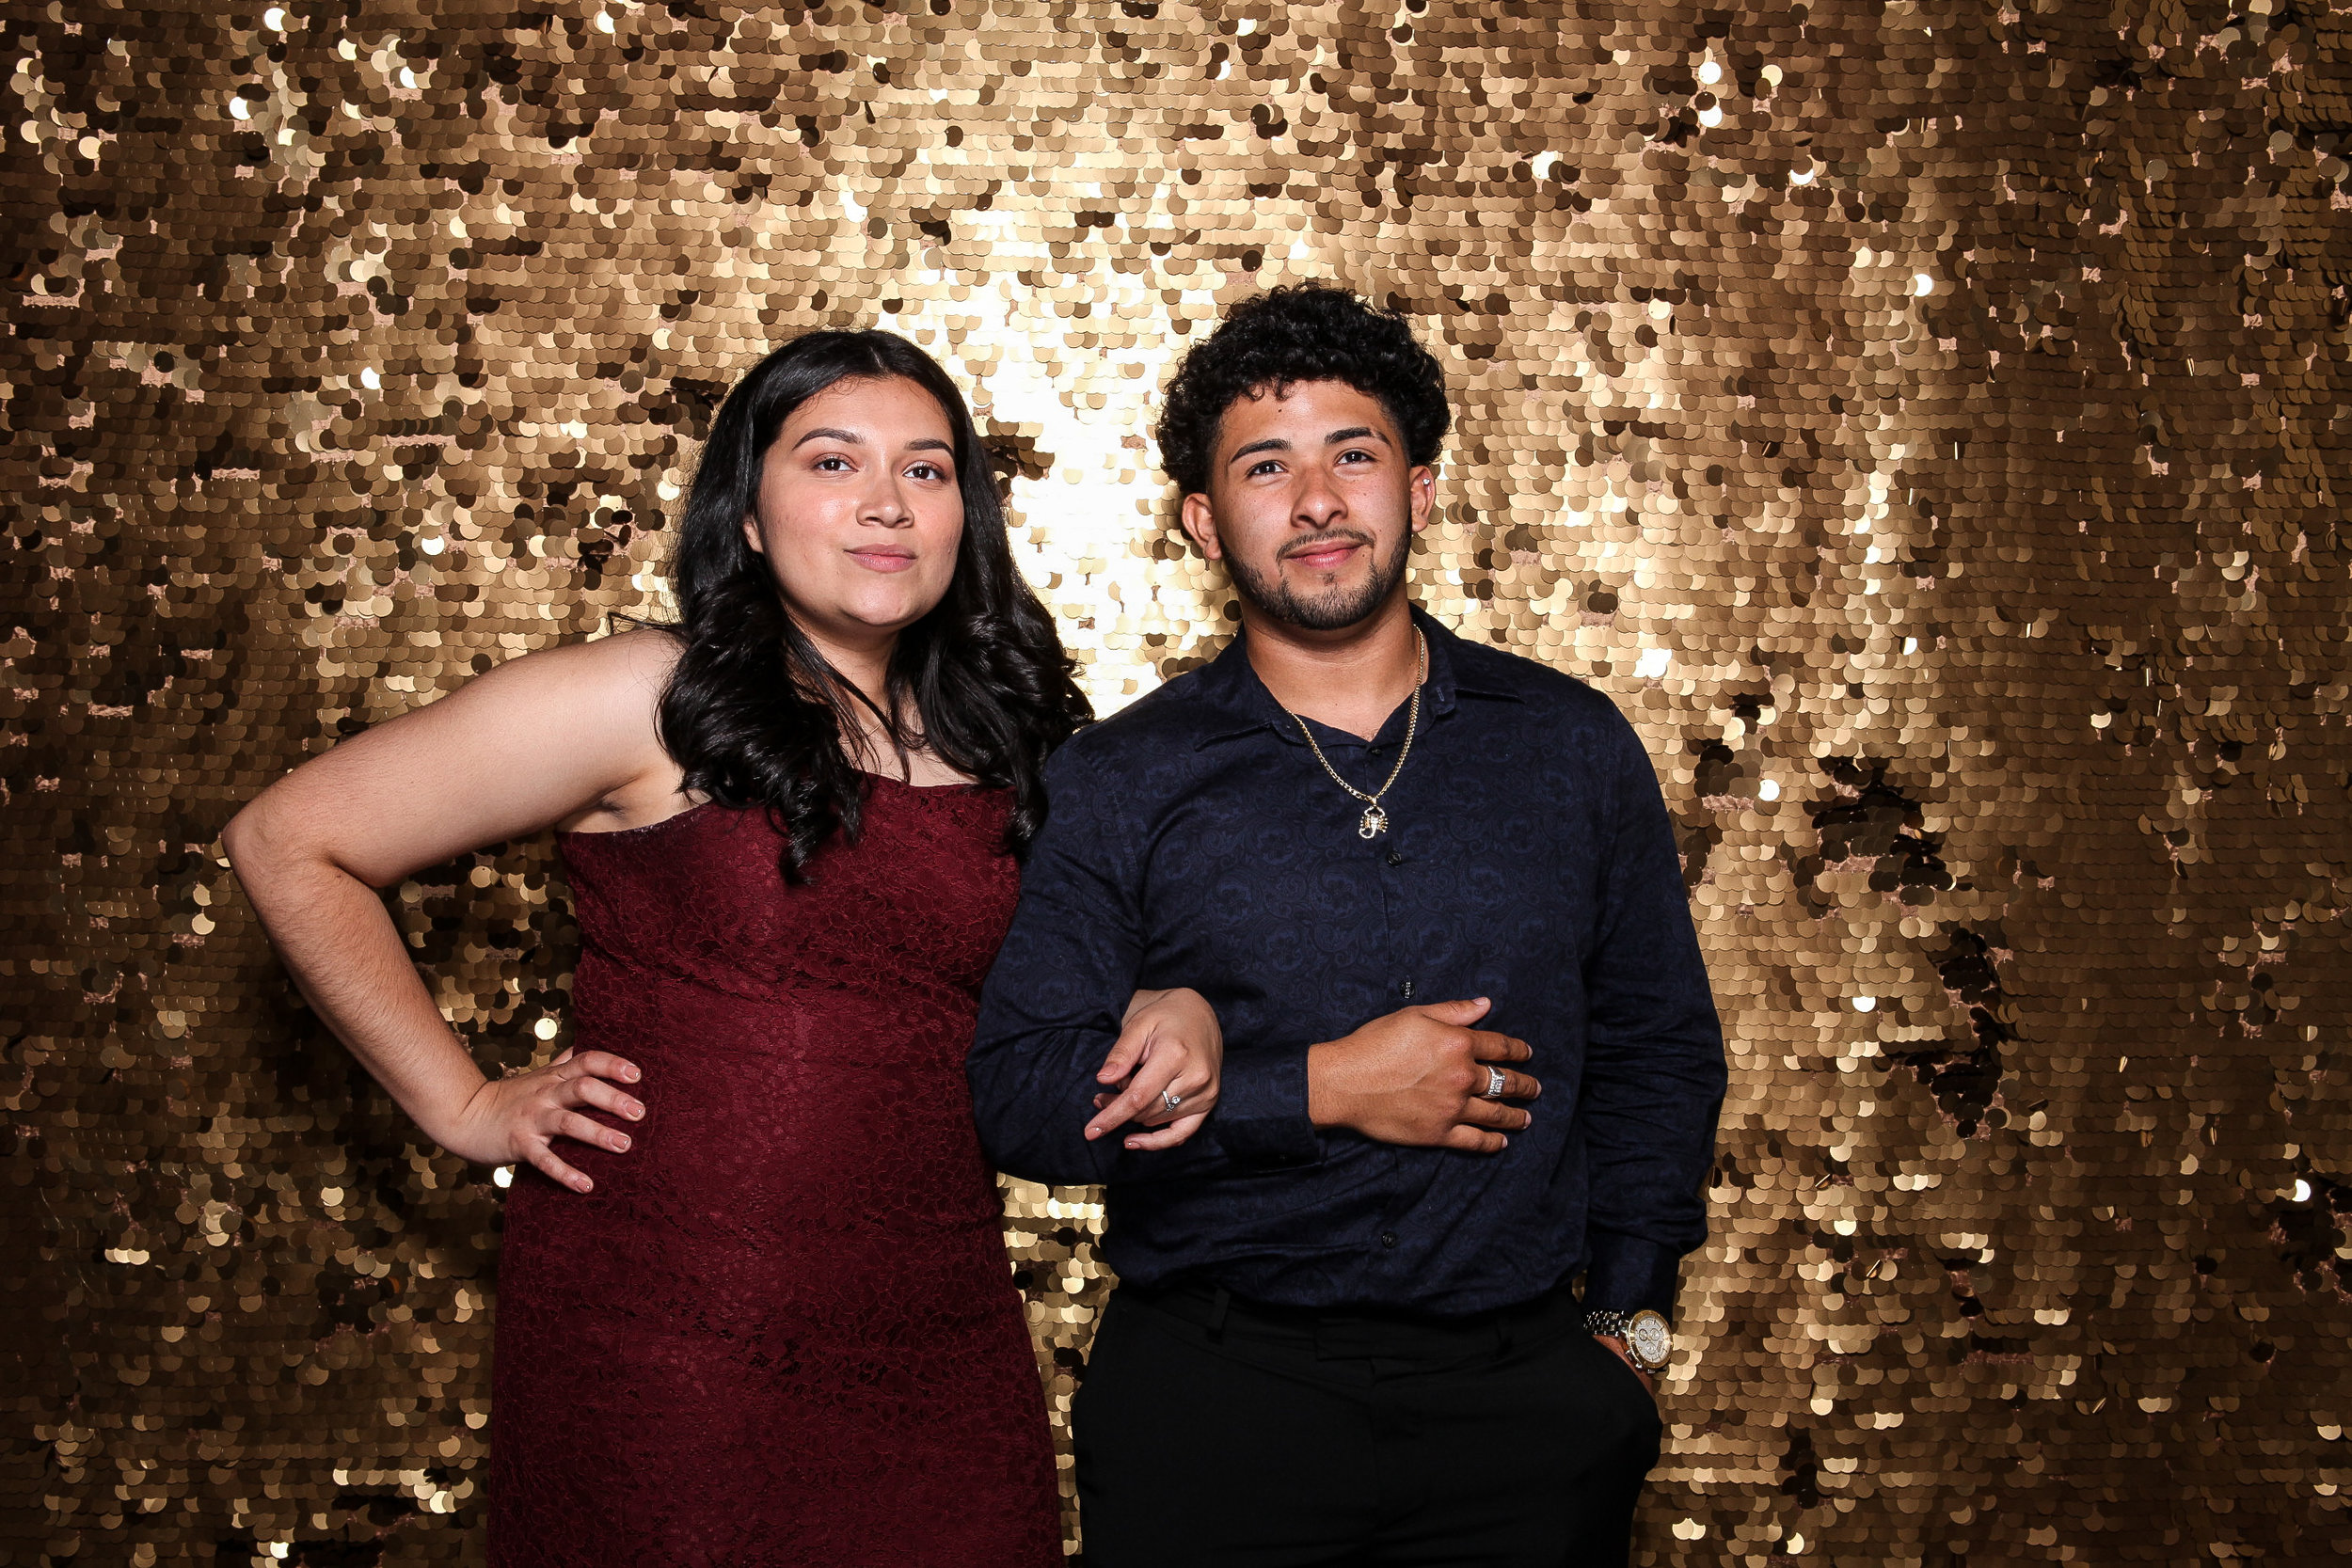 20190503_Adelphi_Senior_Formal-351.jpg